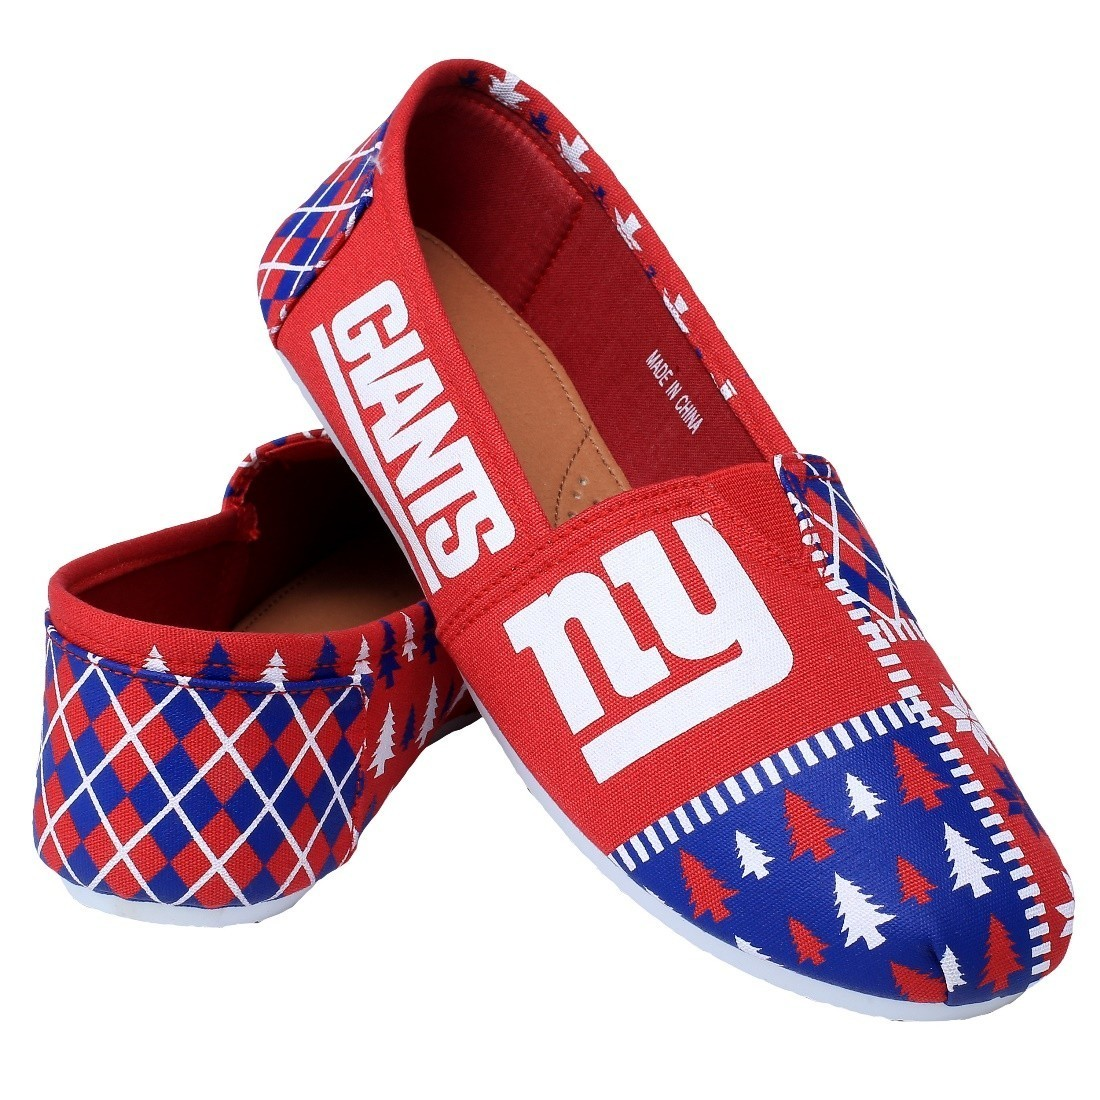 Details about New York Giants Women's NFL